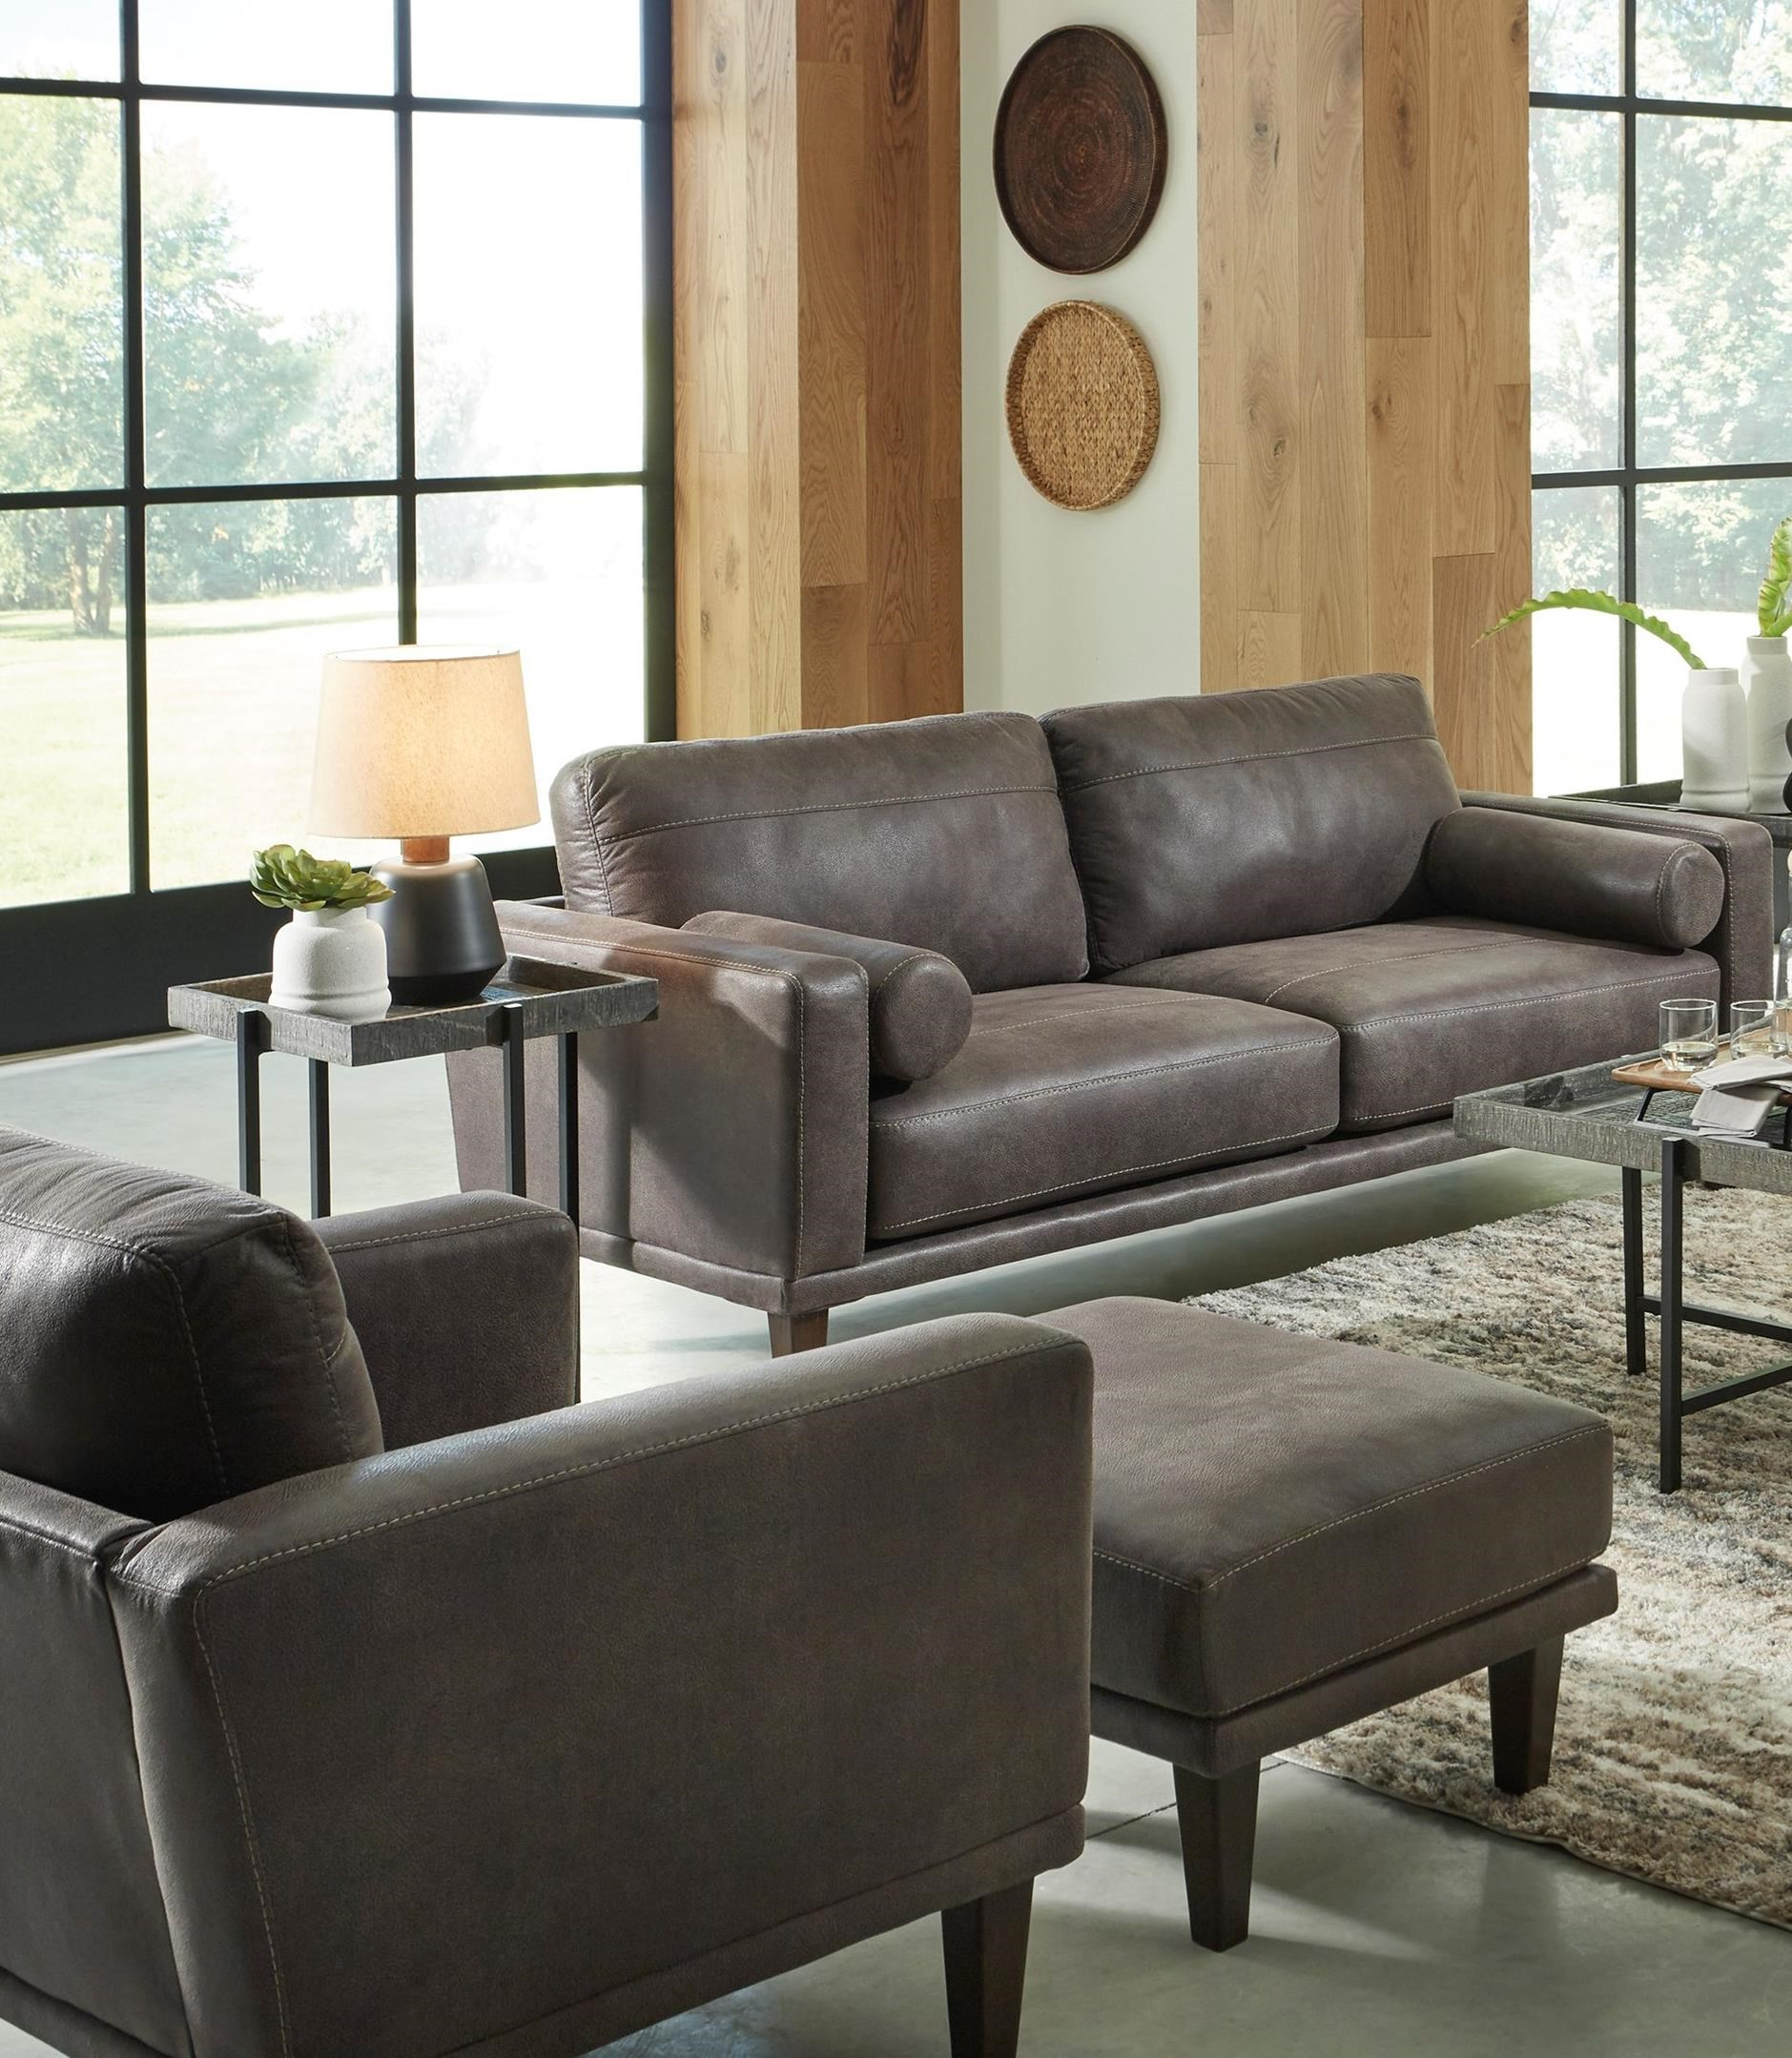 Arroyo Living Room Group by Ashley (Signature Design) at Johnny Janosik